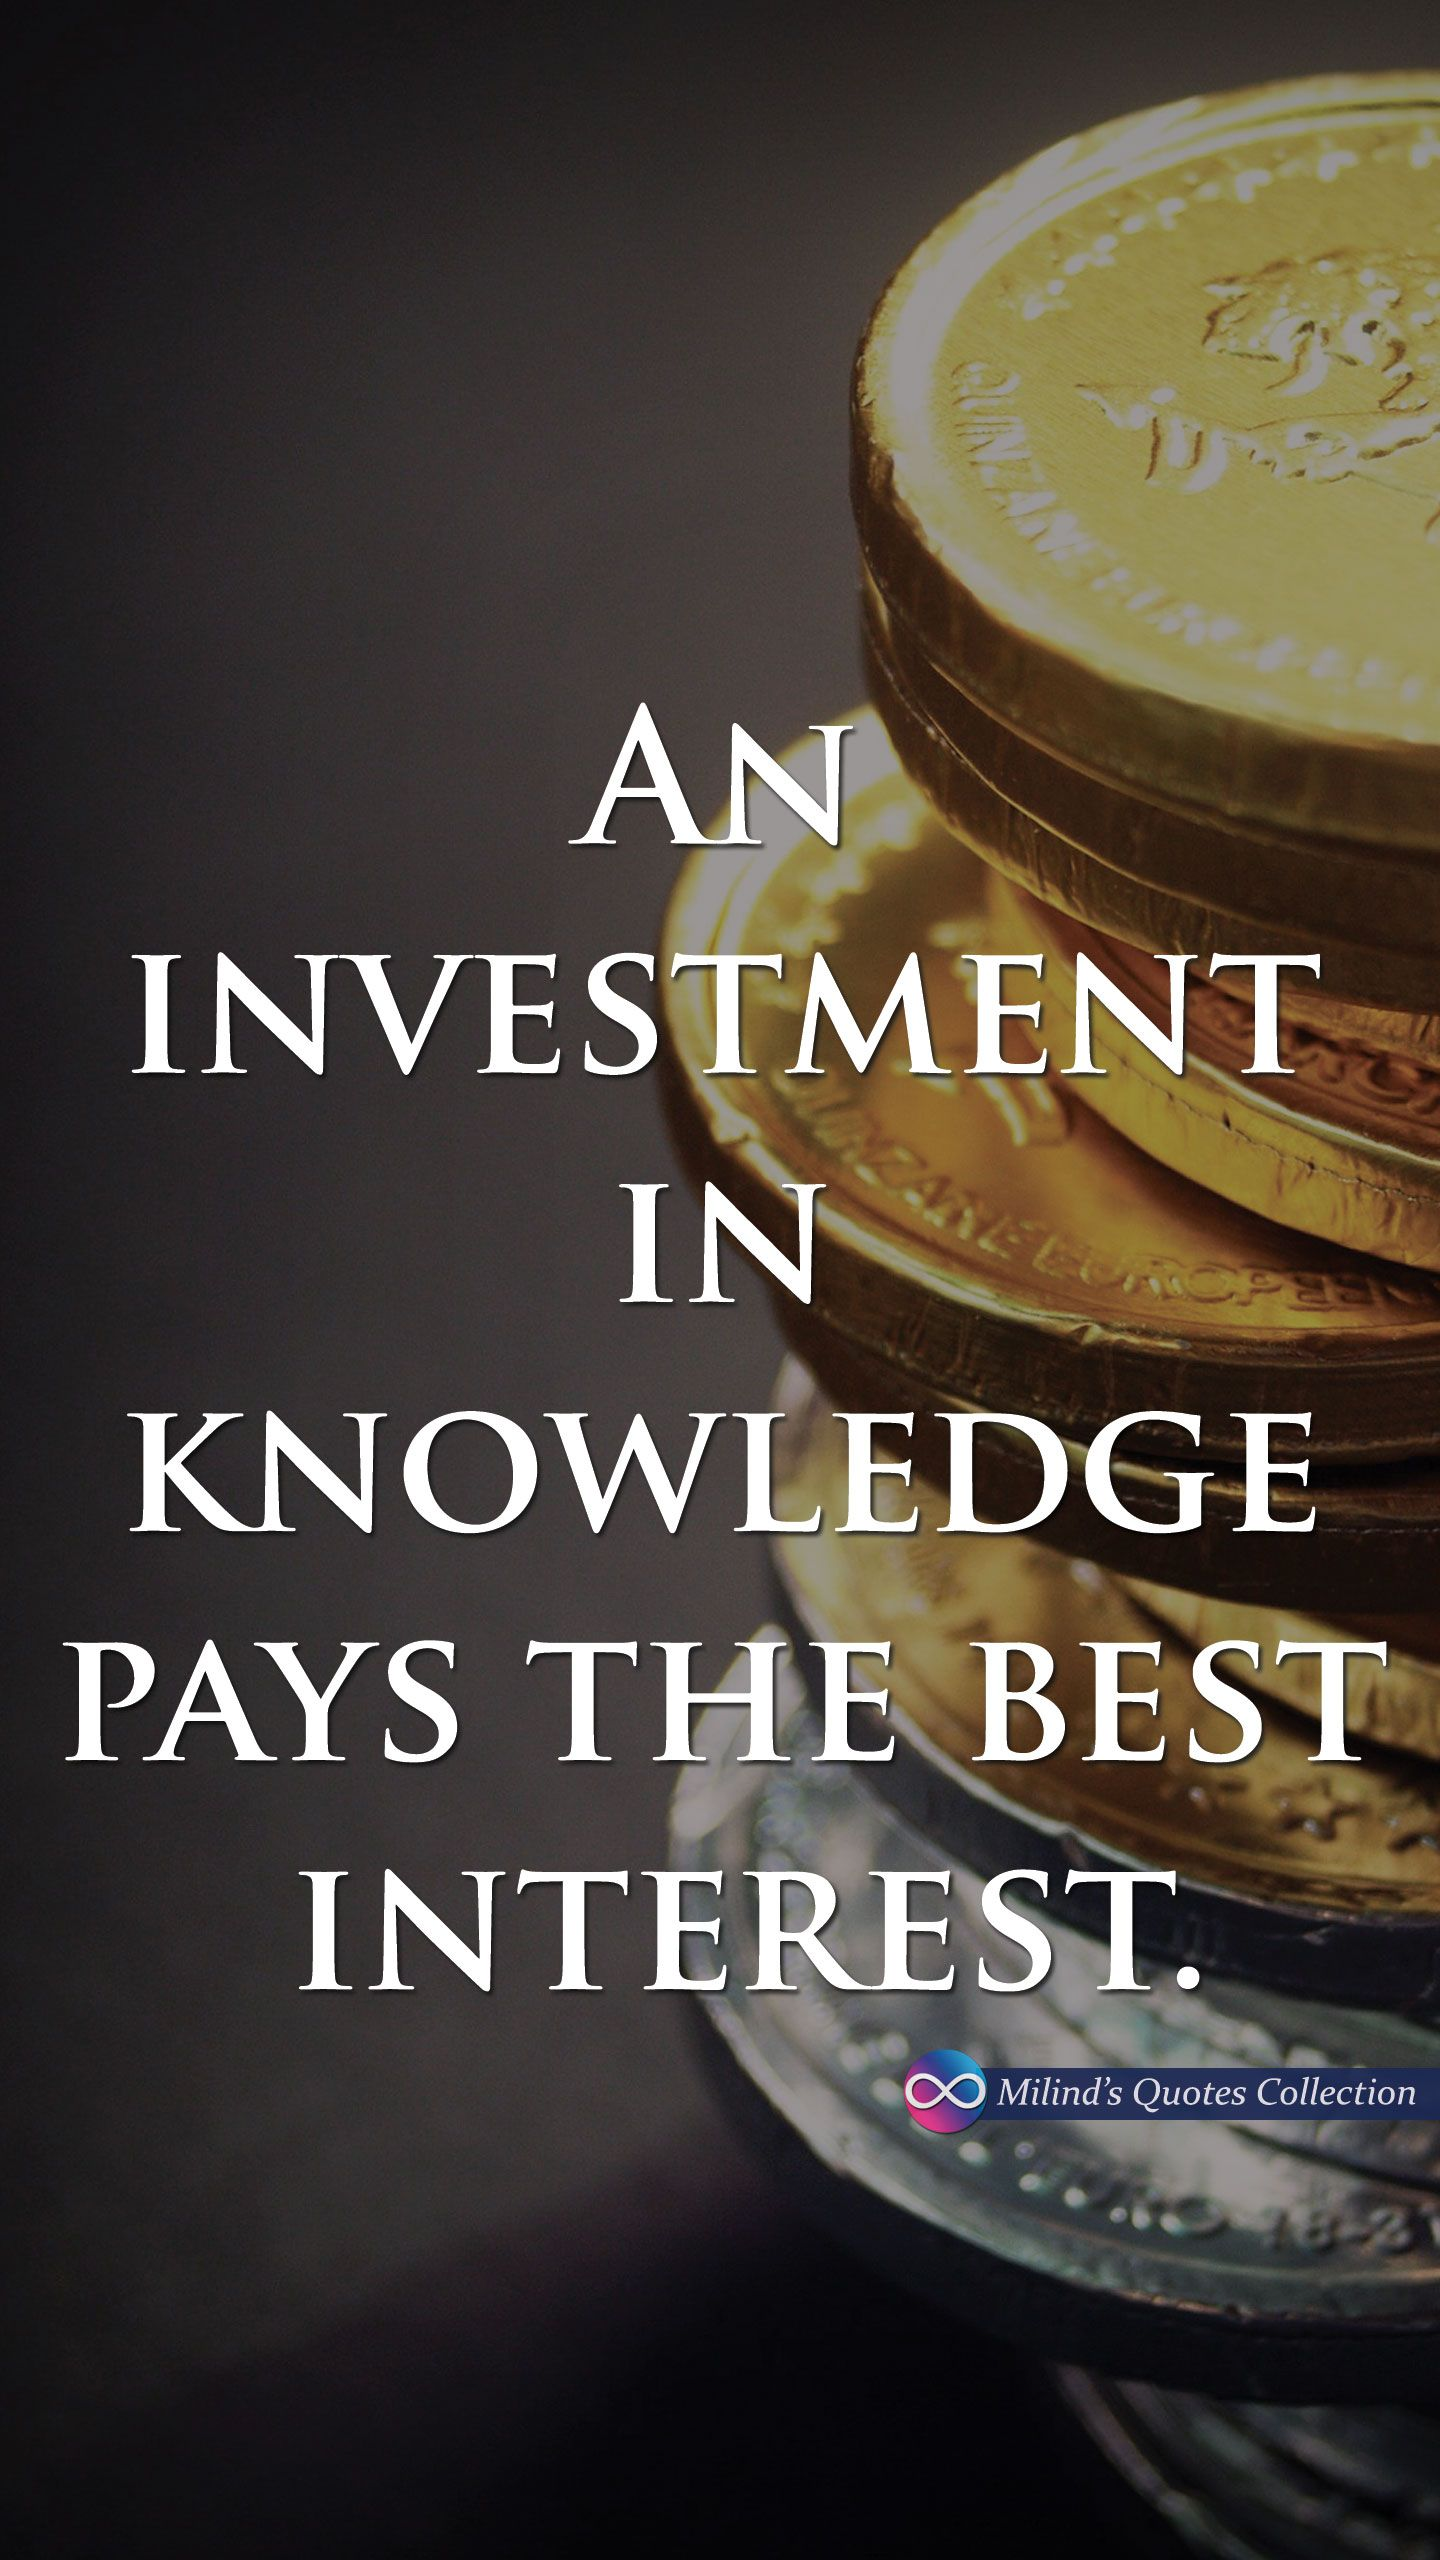 An investment in knowledge pays the best interest 1440x2560